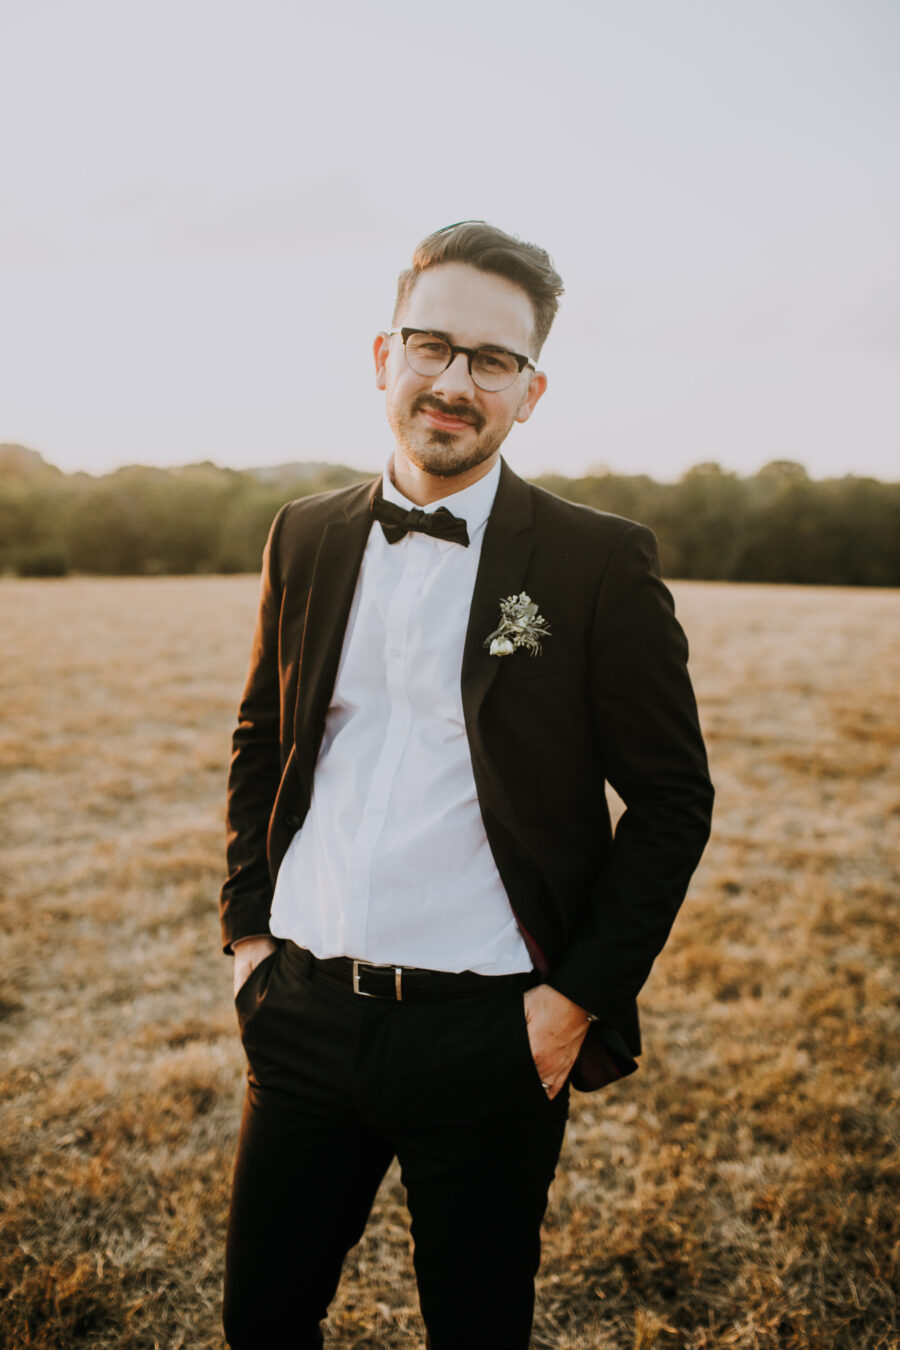 Grooms portrait: Nashville Wedding with Beautiful Views by Teale Photography featured on Nashville Bride Guide